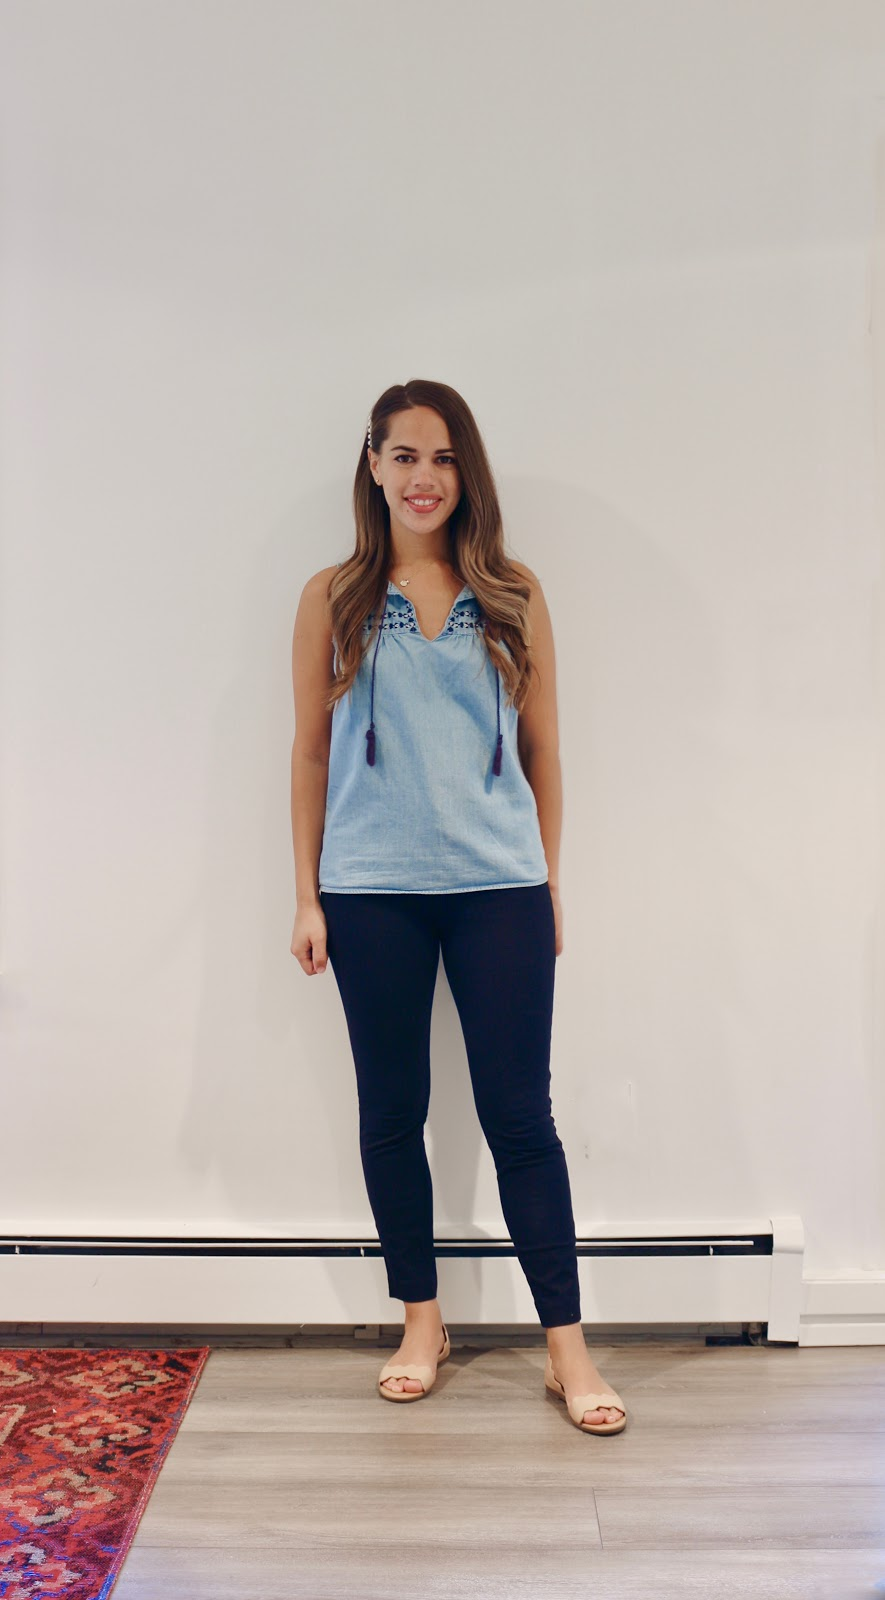 Jules in Flats -  Chambray Tassel Tie Top (Business Casual Summer Workwear on a Budget)